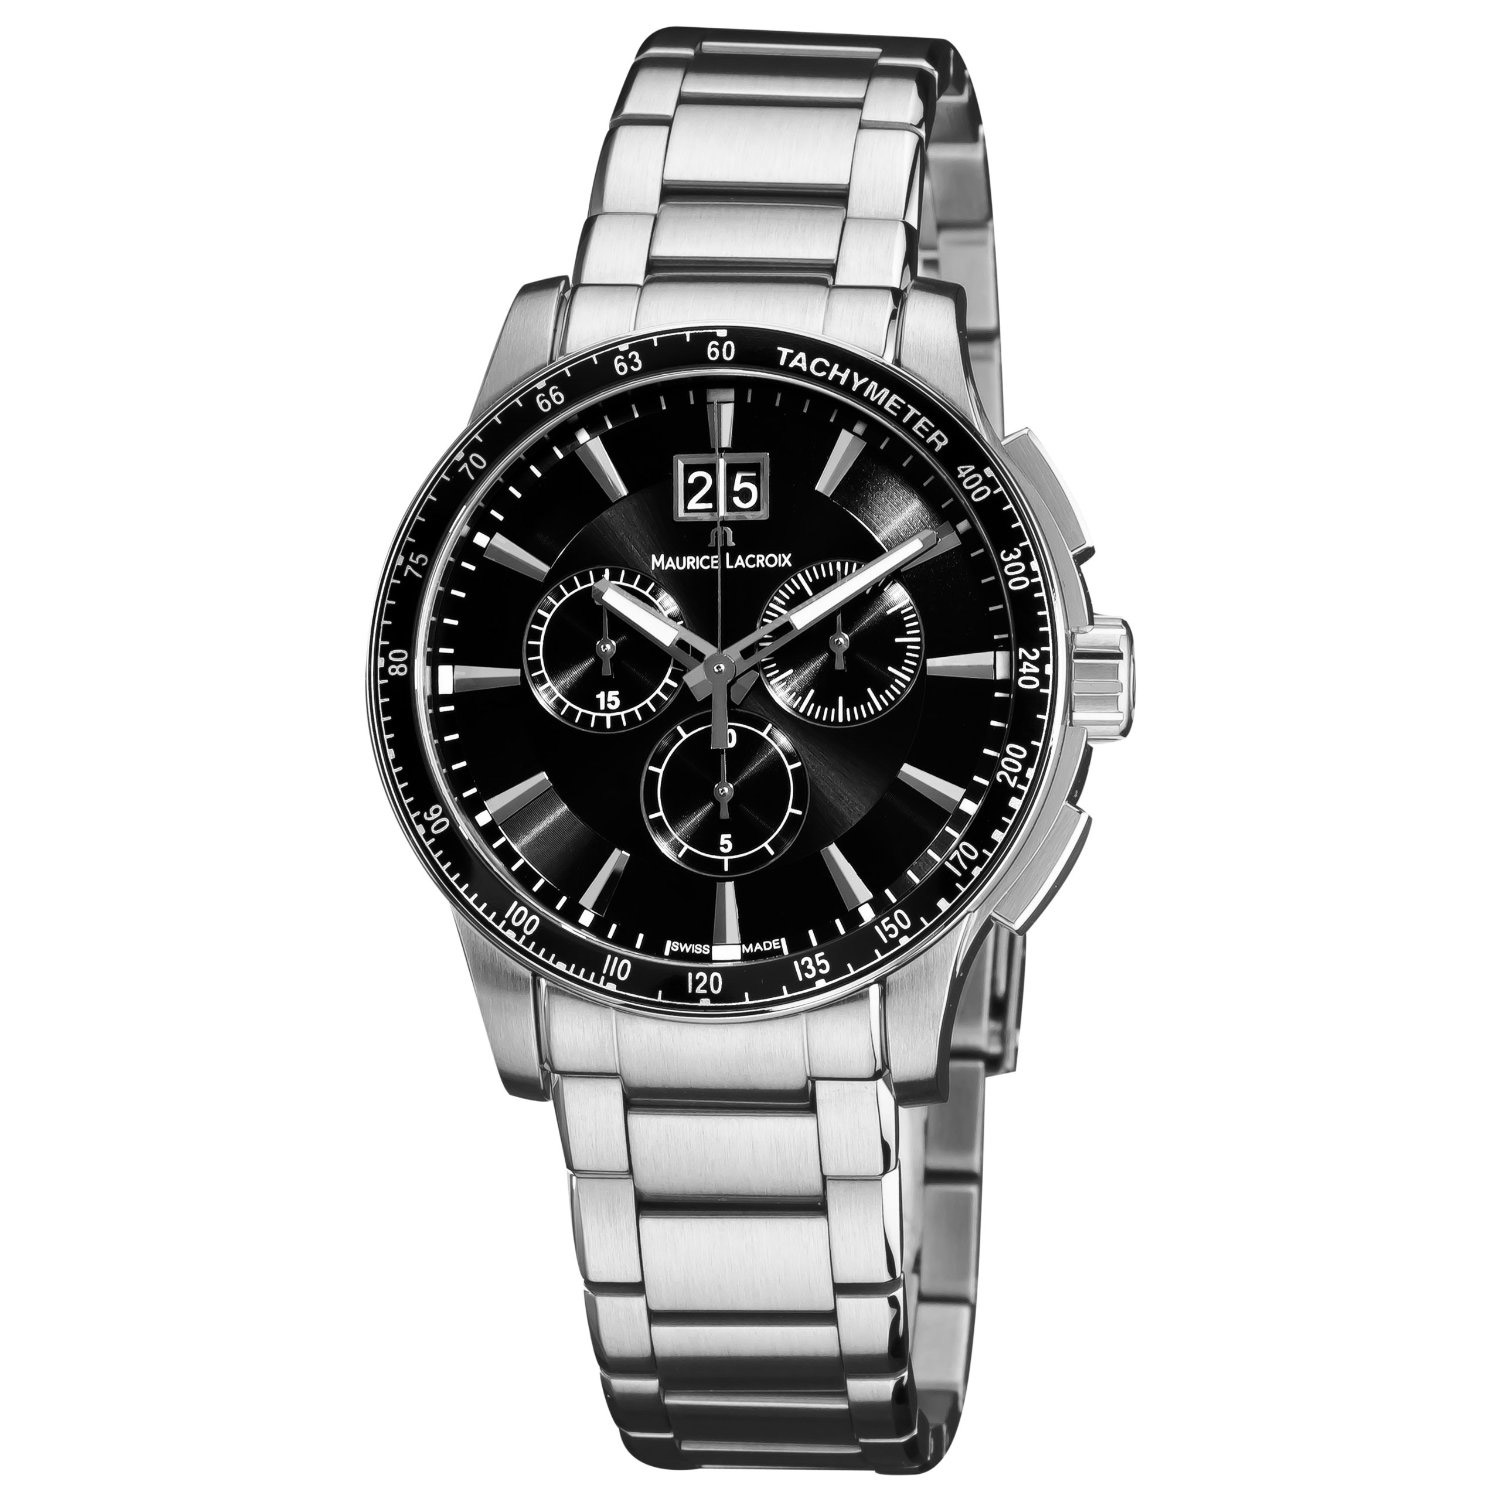 Maurice lacroix miros chronograph men 39 s watch model mi1098 ss042330 for Maurice lacroix watches